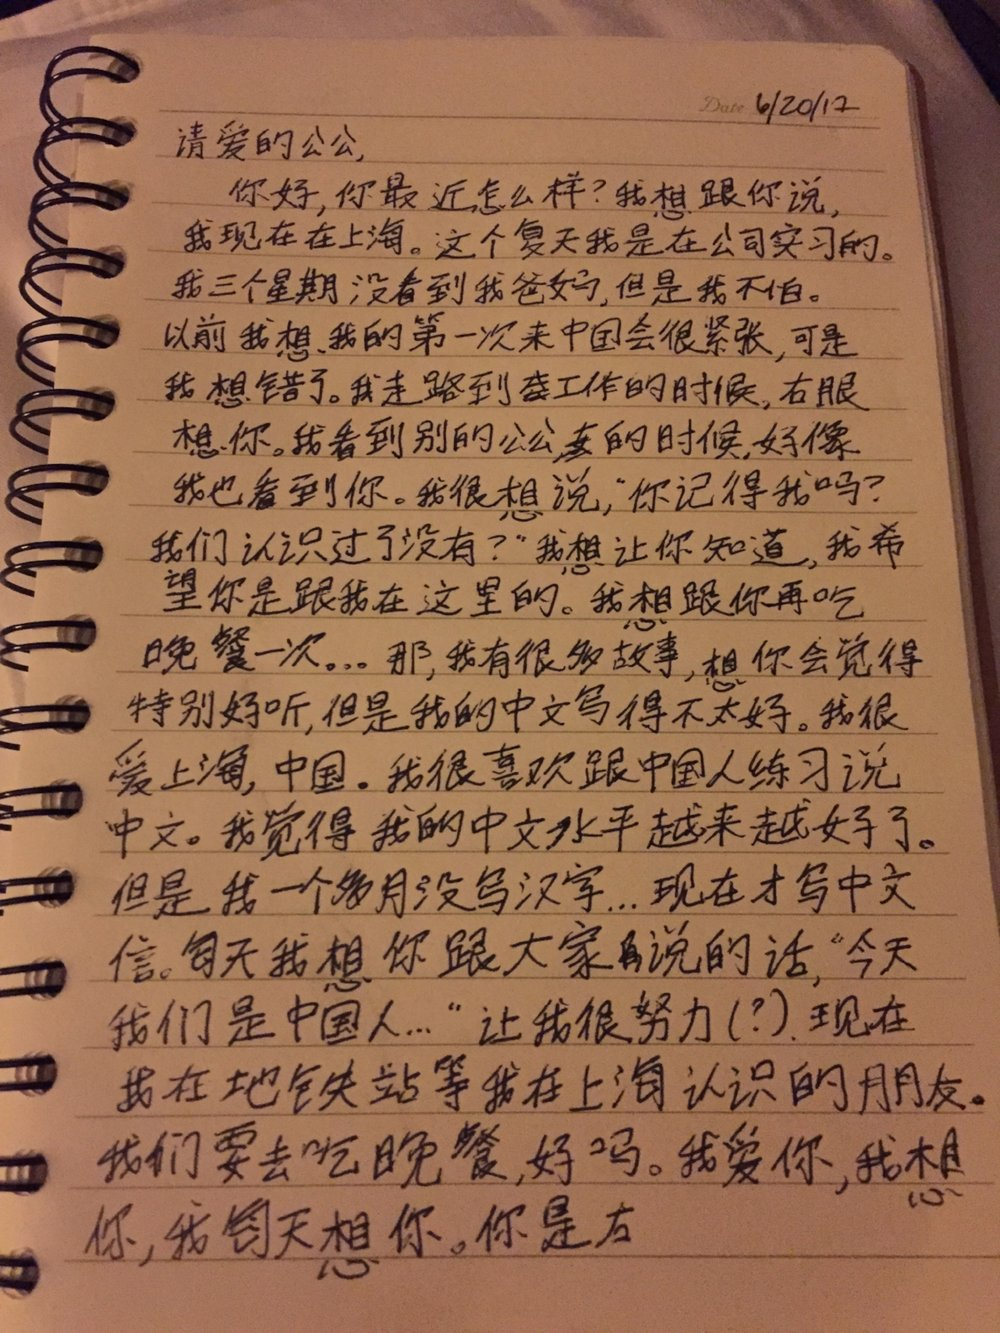 While waiting to meet a friend at Qibao station, I sat down and decided to spend about 40 minutes handwriting a letter to my late Gong Gong (I know, I know - my written Chinese is full of mistakes, haha). When I came back to Texas, I sent this handwritten letter to my Po Po at the beginning of August in celebration of Gong Gong's birthday celebration and third anniversary of his passing.